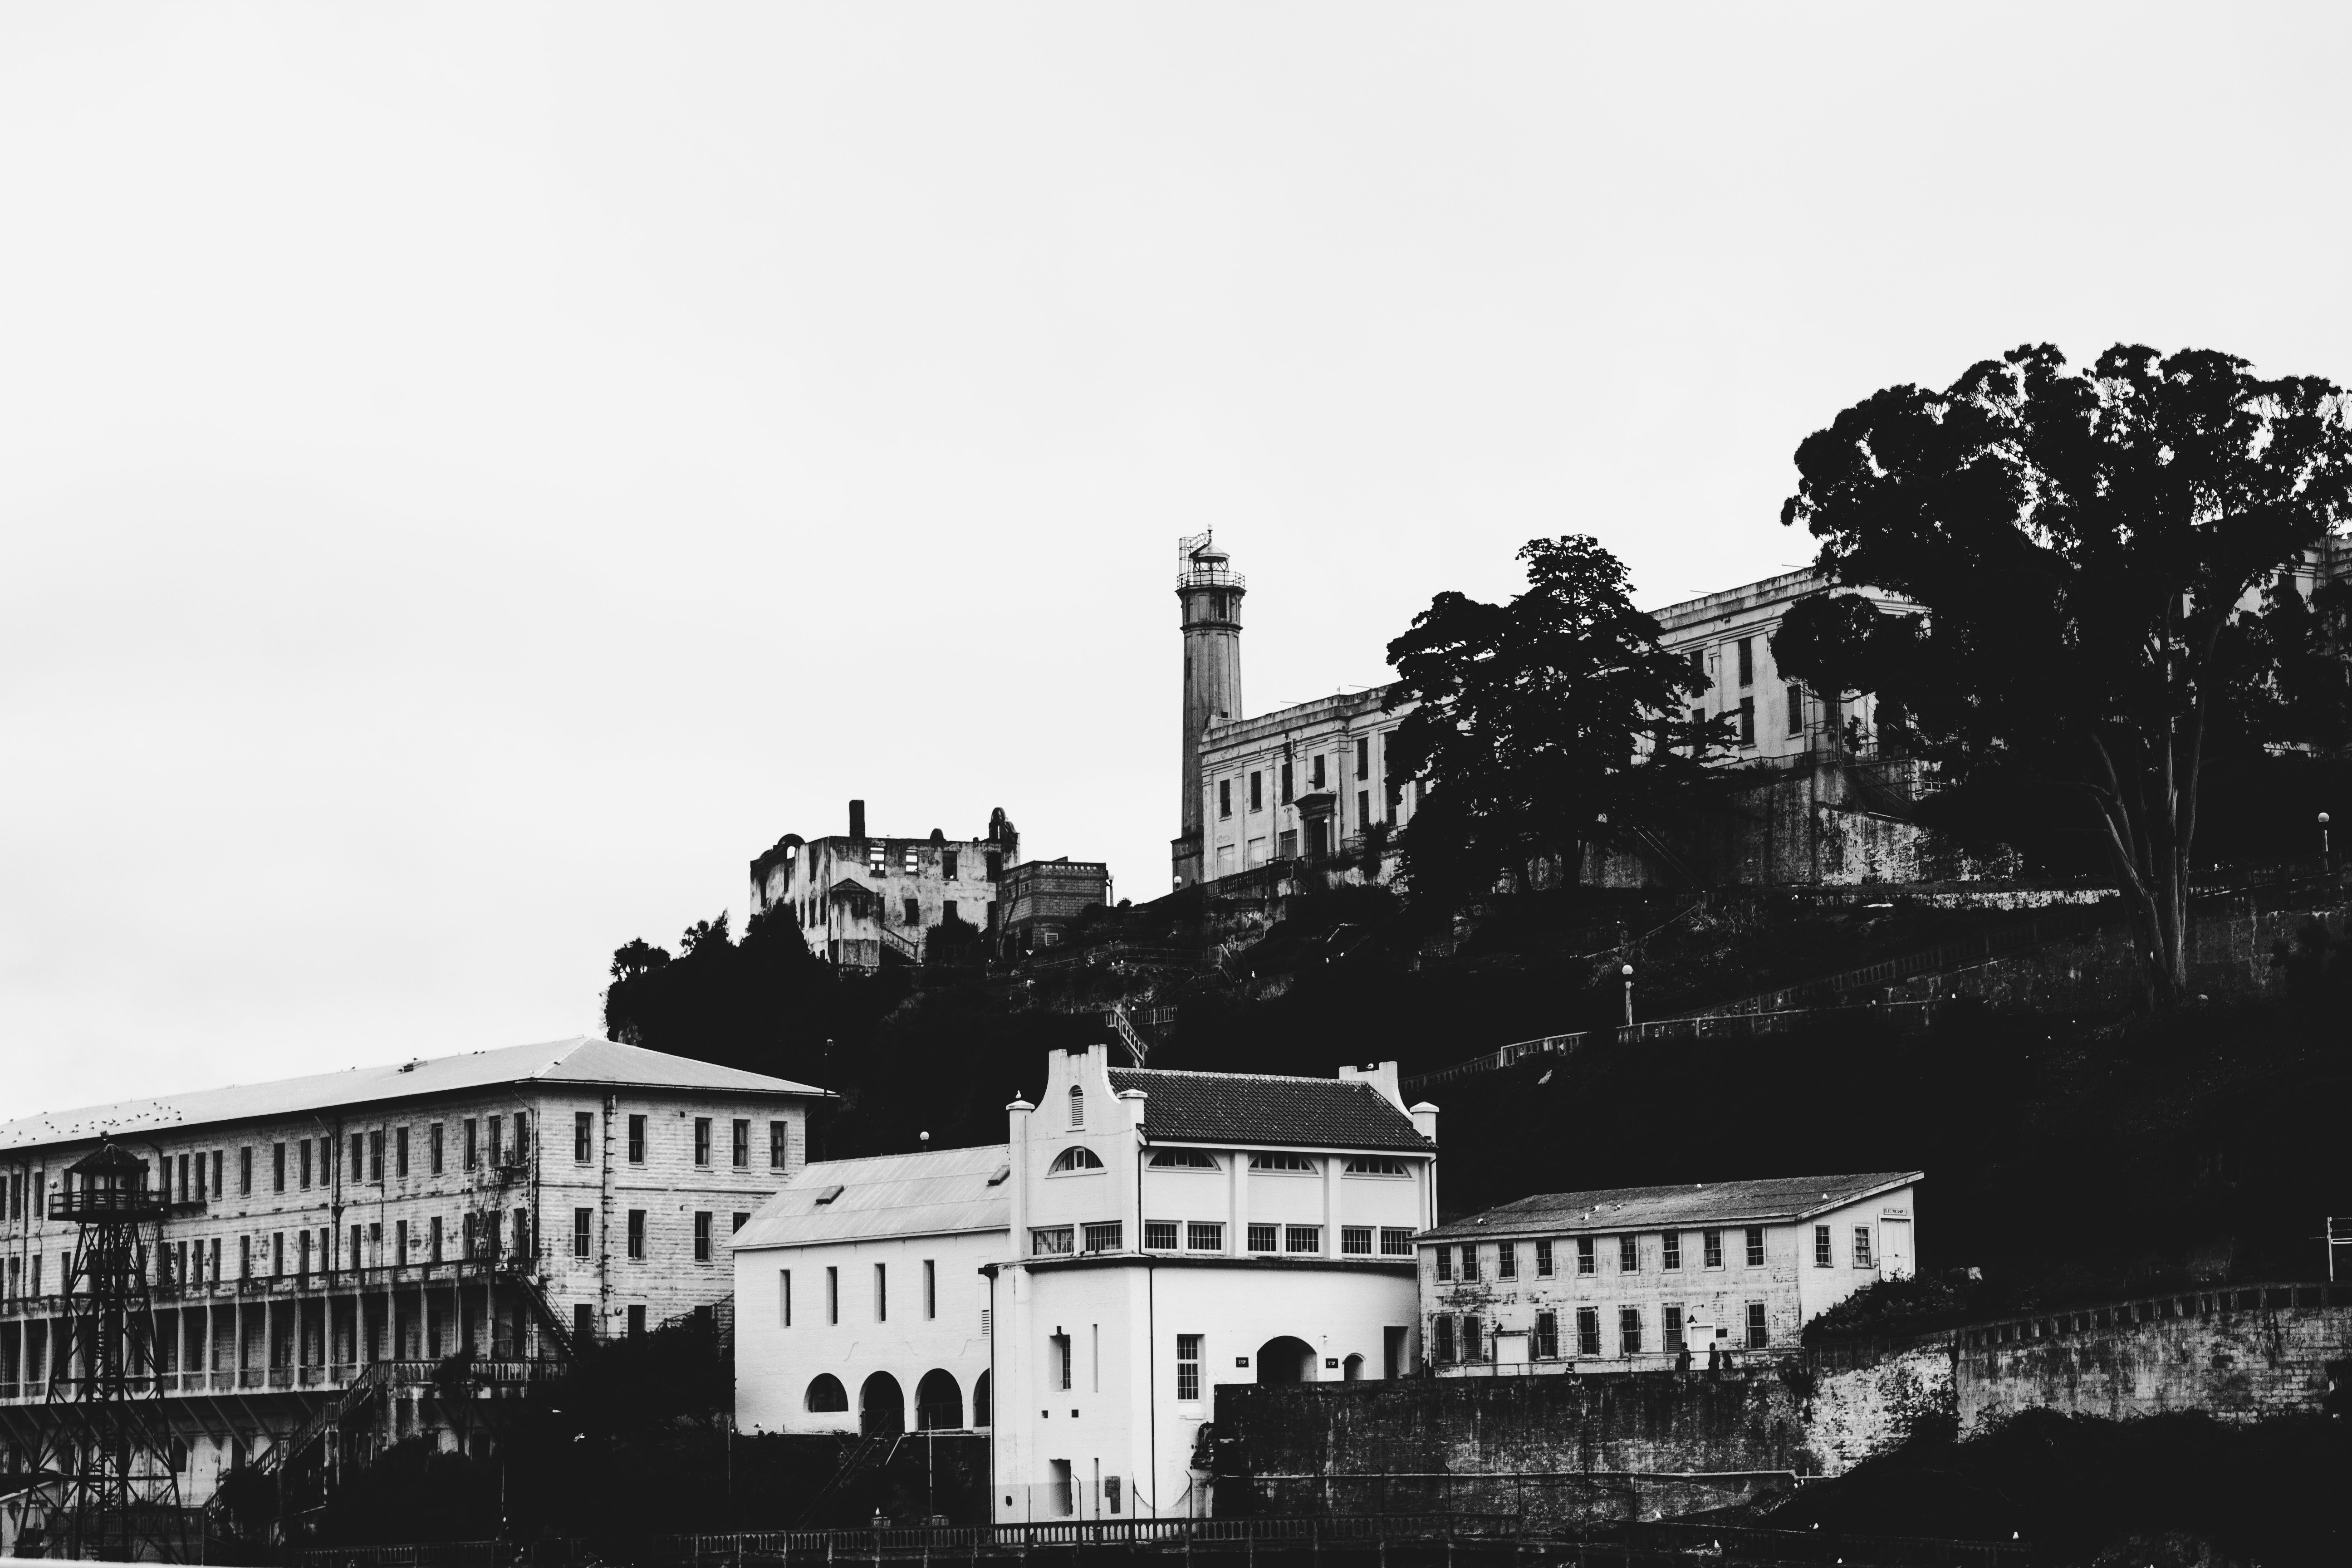 grayscale photo of buildings